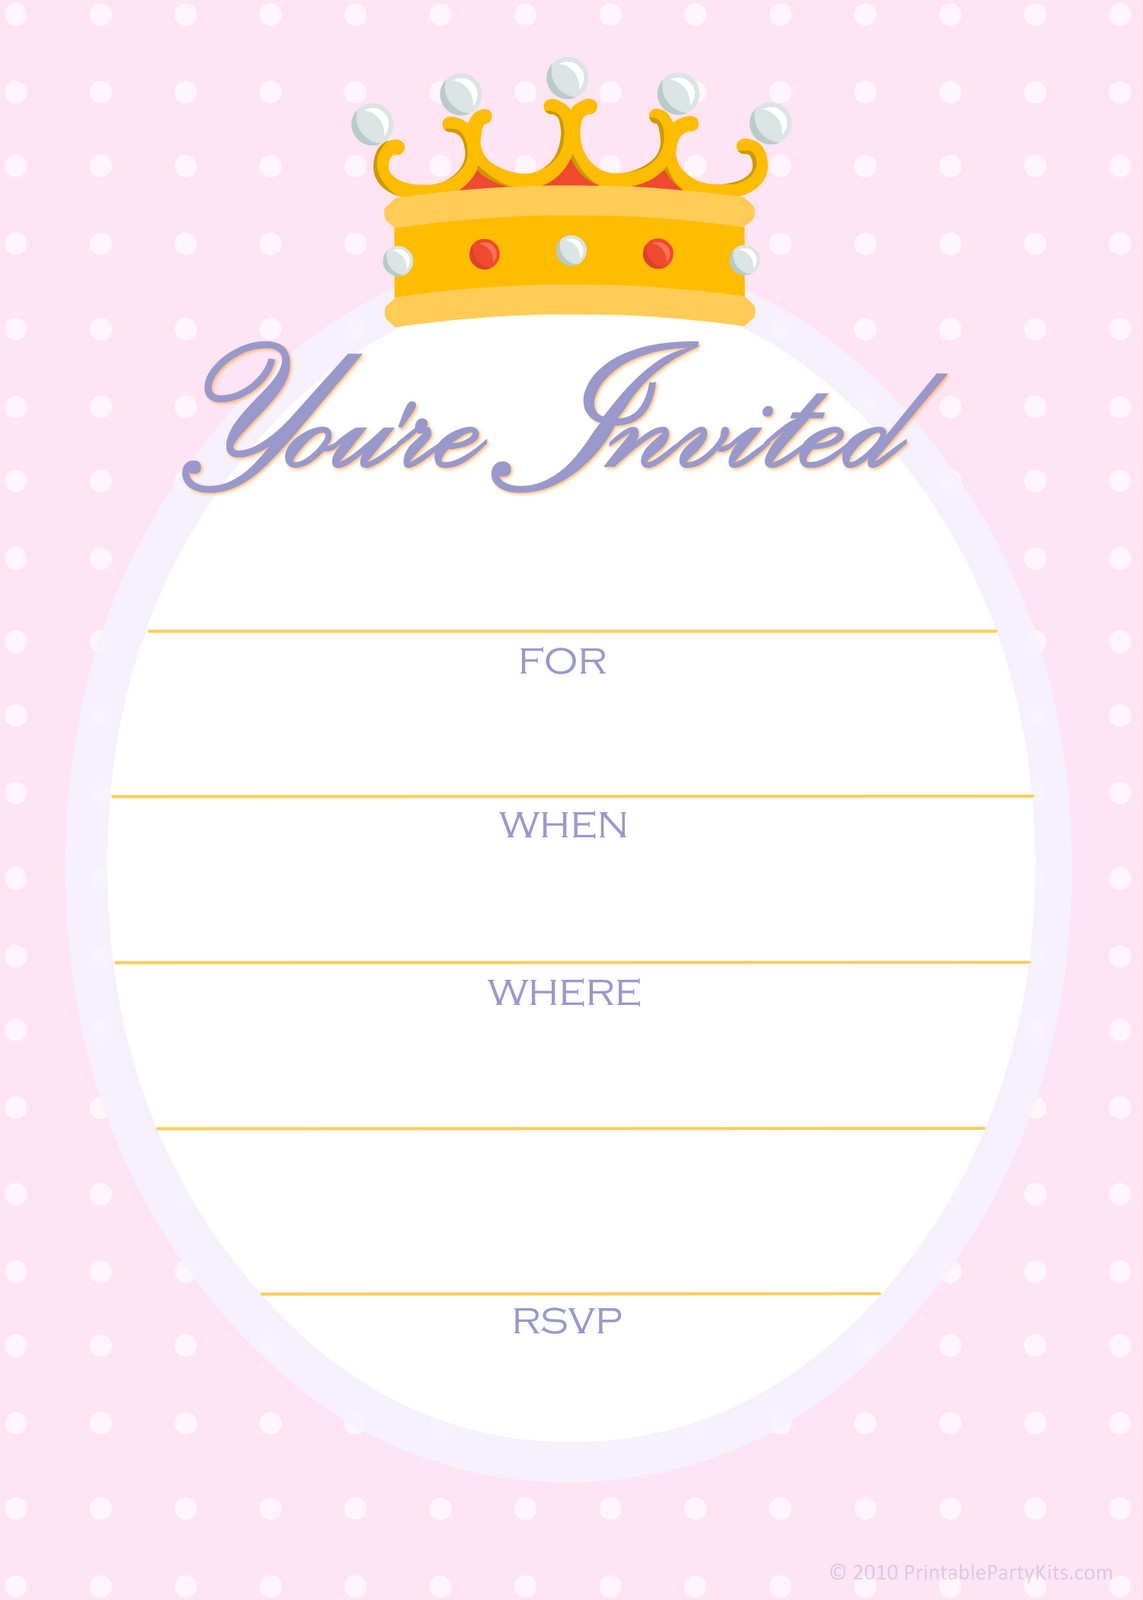 Best ideas about Printable Birthday Invitations . Save or Pin FREE Printable Golden Unicorn Birthday Invitation Template Now.